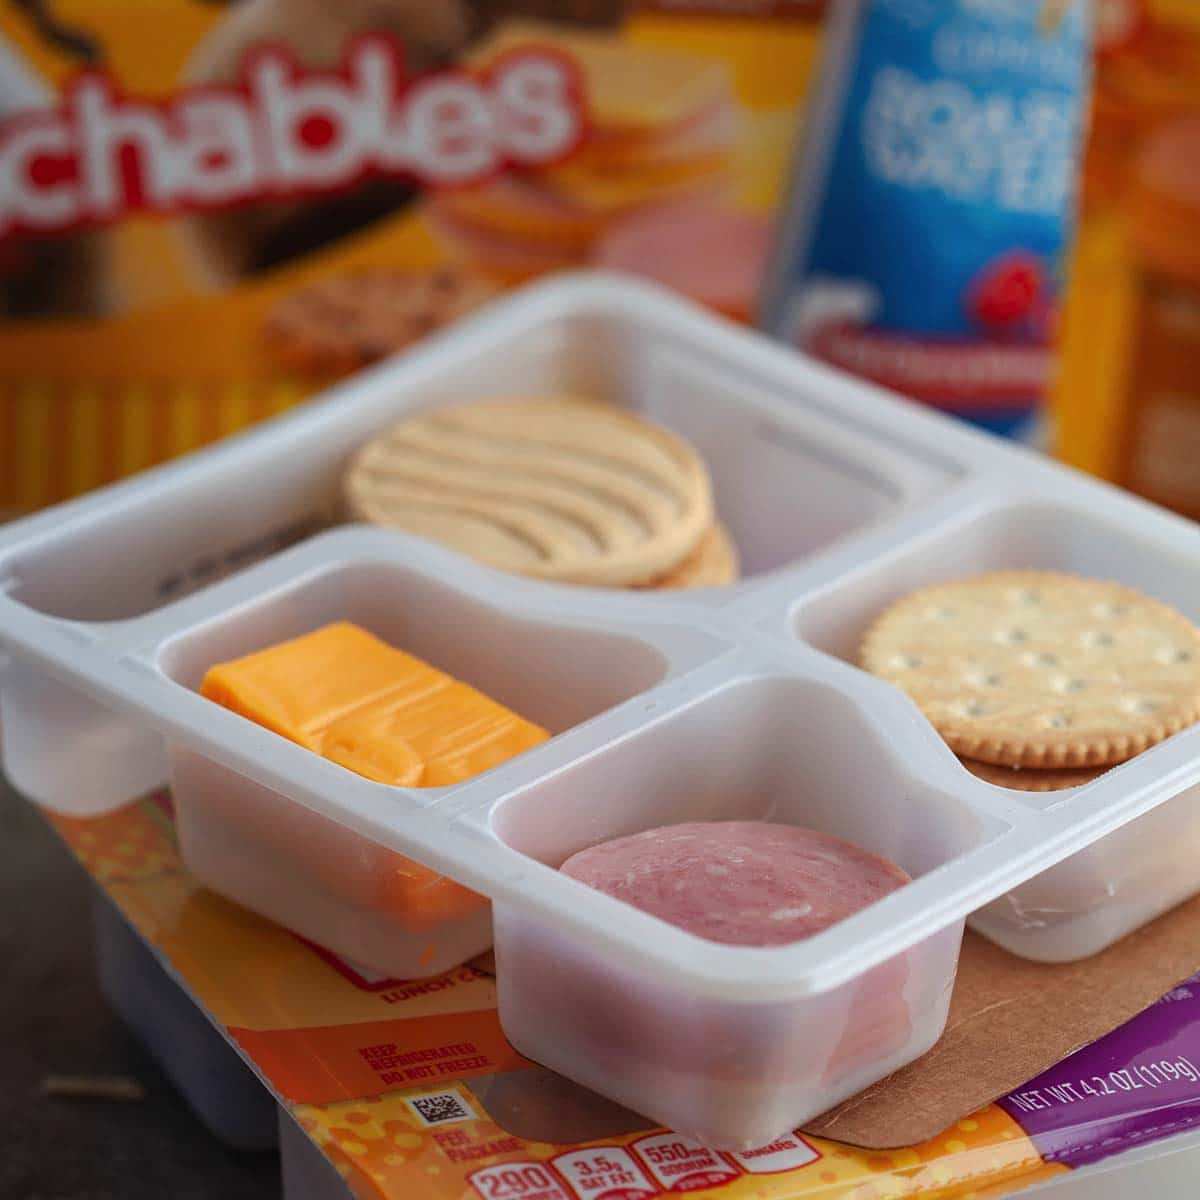 Can you freeze Lunchables? The answer is, yes, you can, providing you defrost them properly. Having said that, freezing these ready-made snacks could alter both their taste and texture.